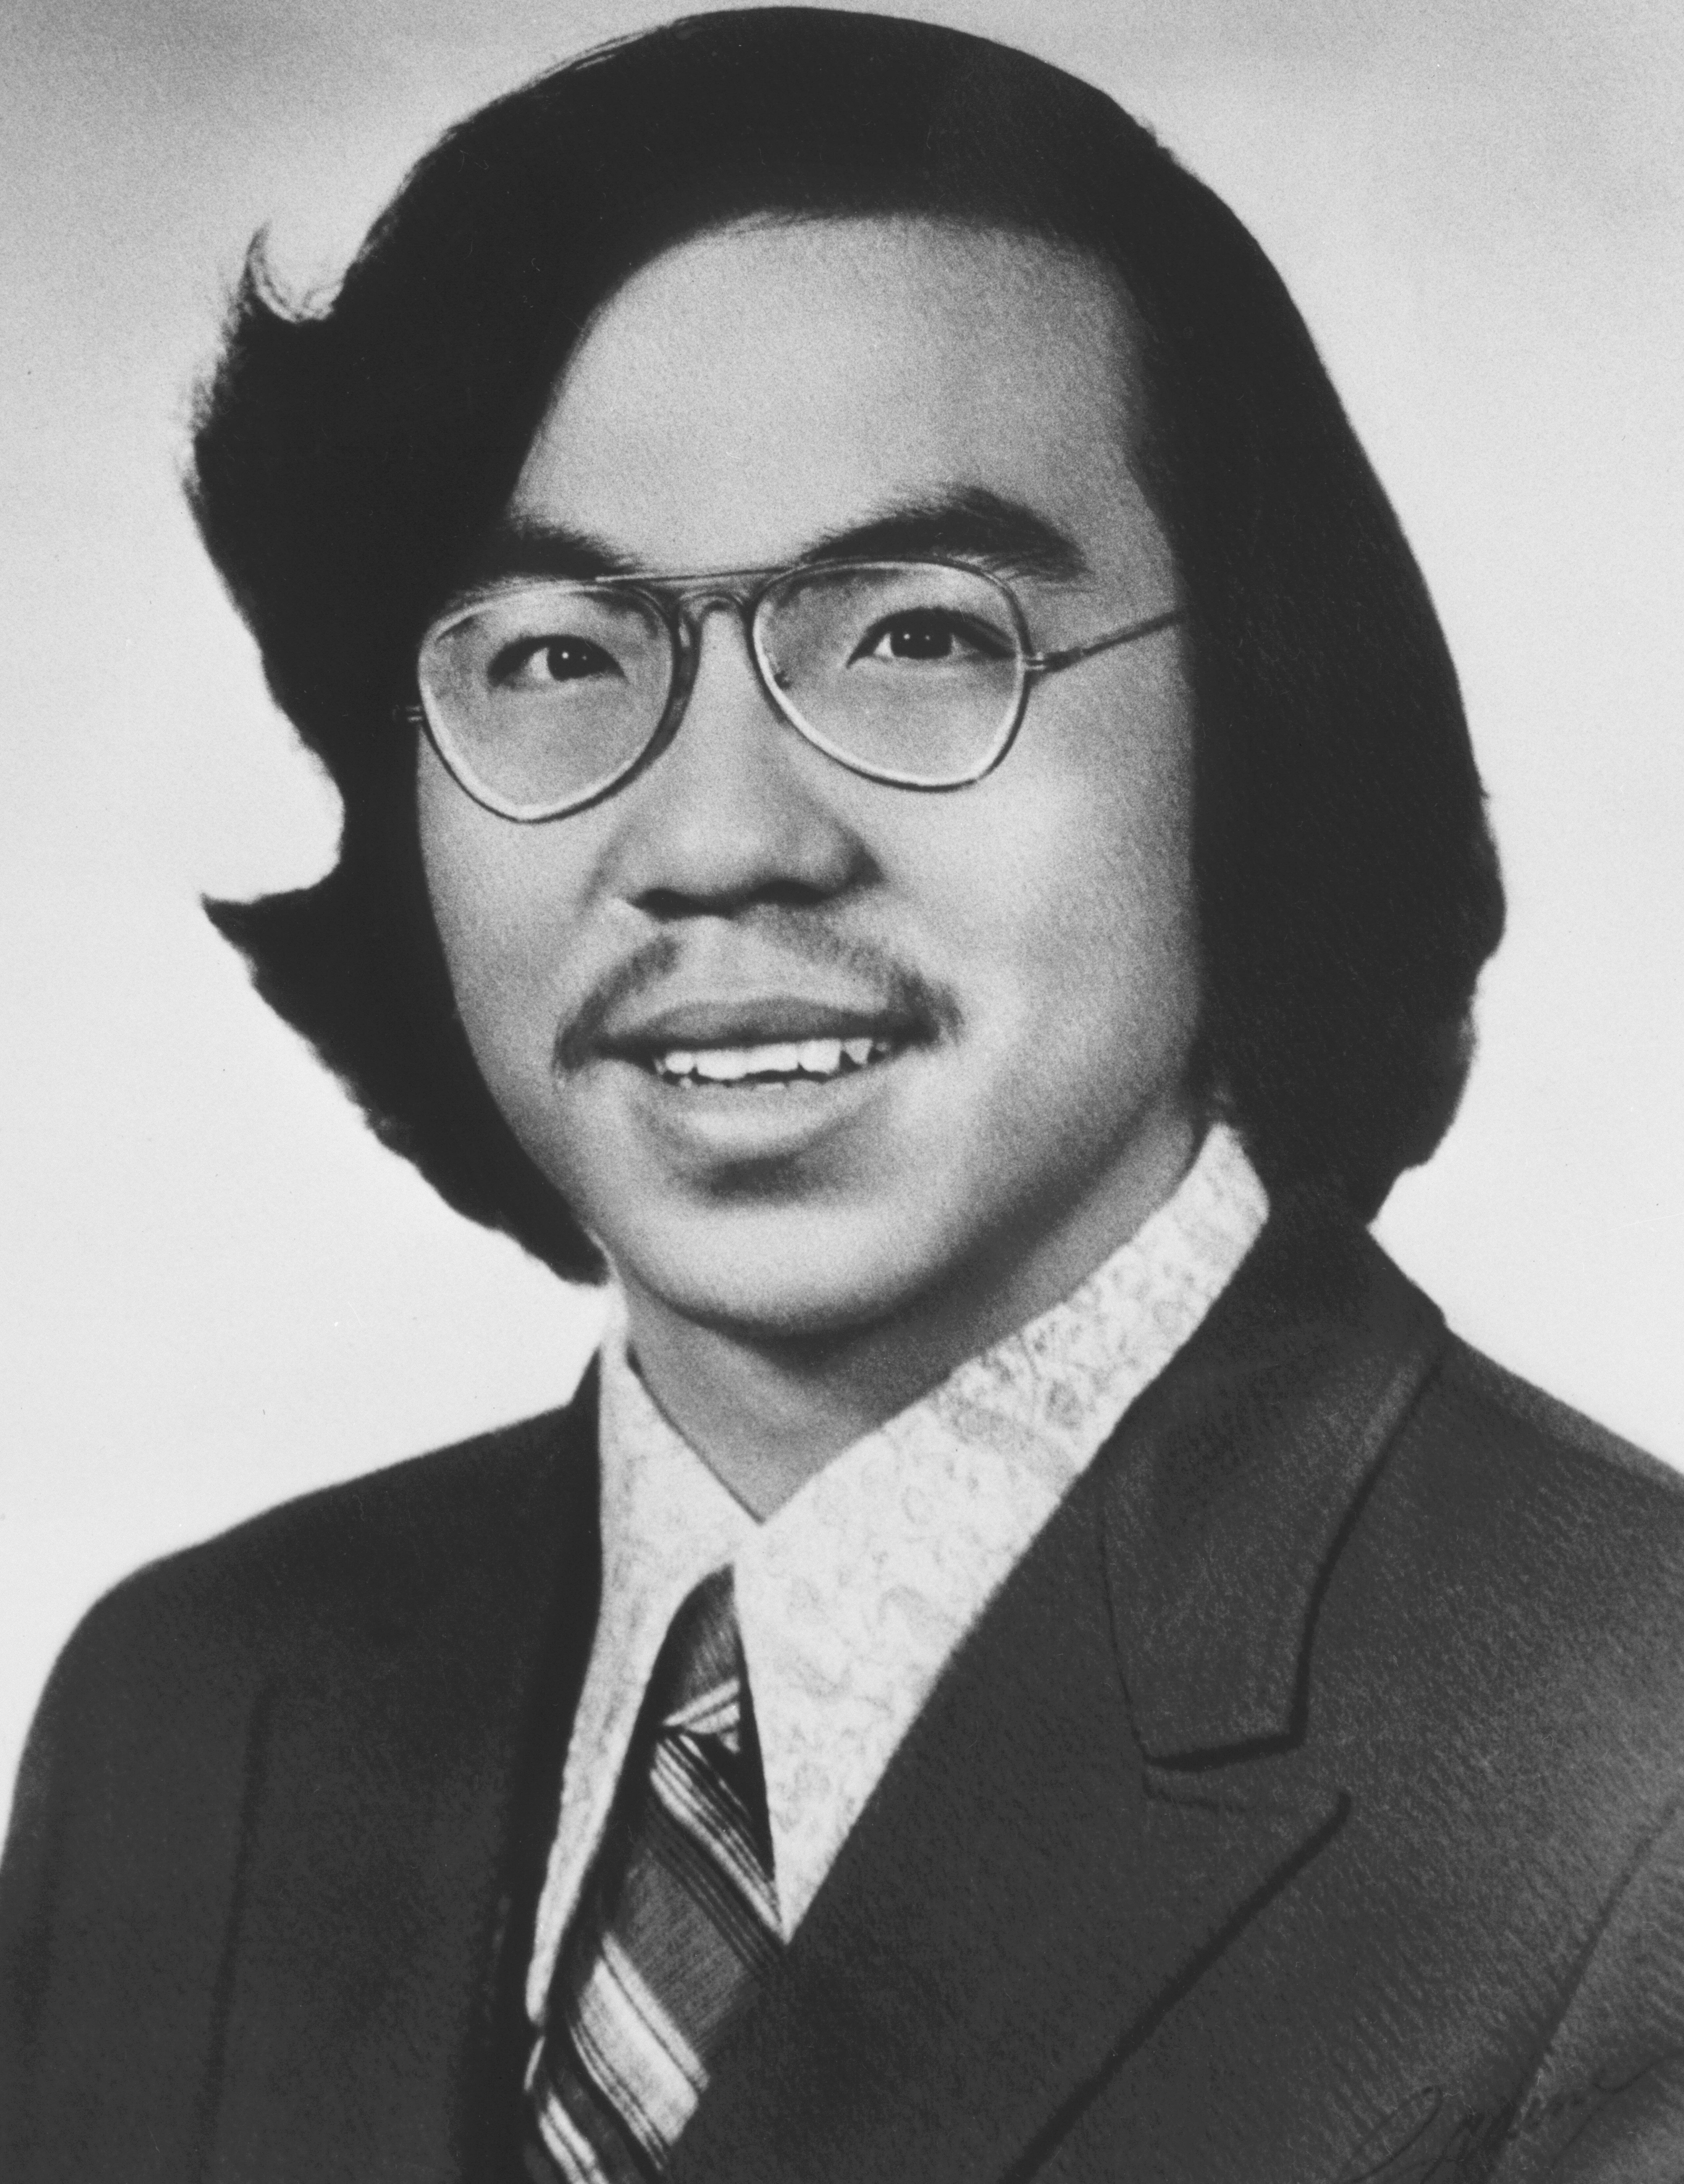 In June of 1982, Vincent Chin was murdered by two white autoworkers who assumed he was Japanese.